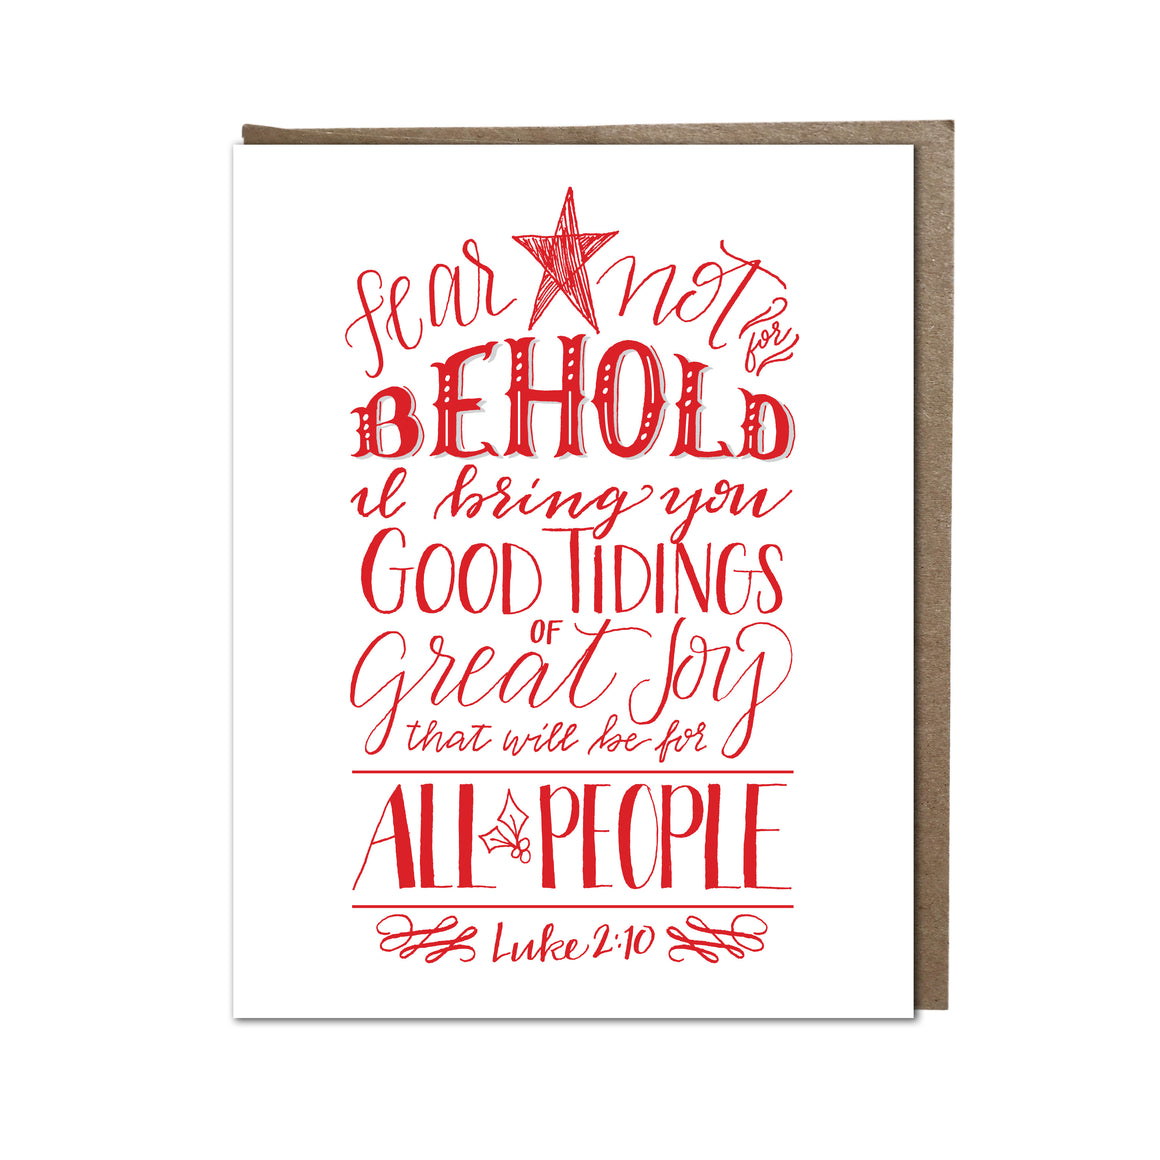 """Good Tidings of Great Joy"" card"